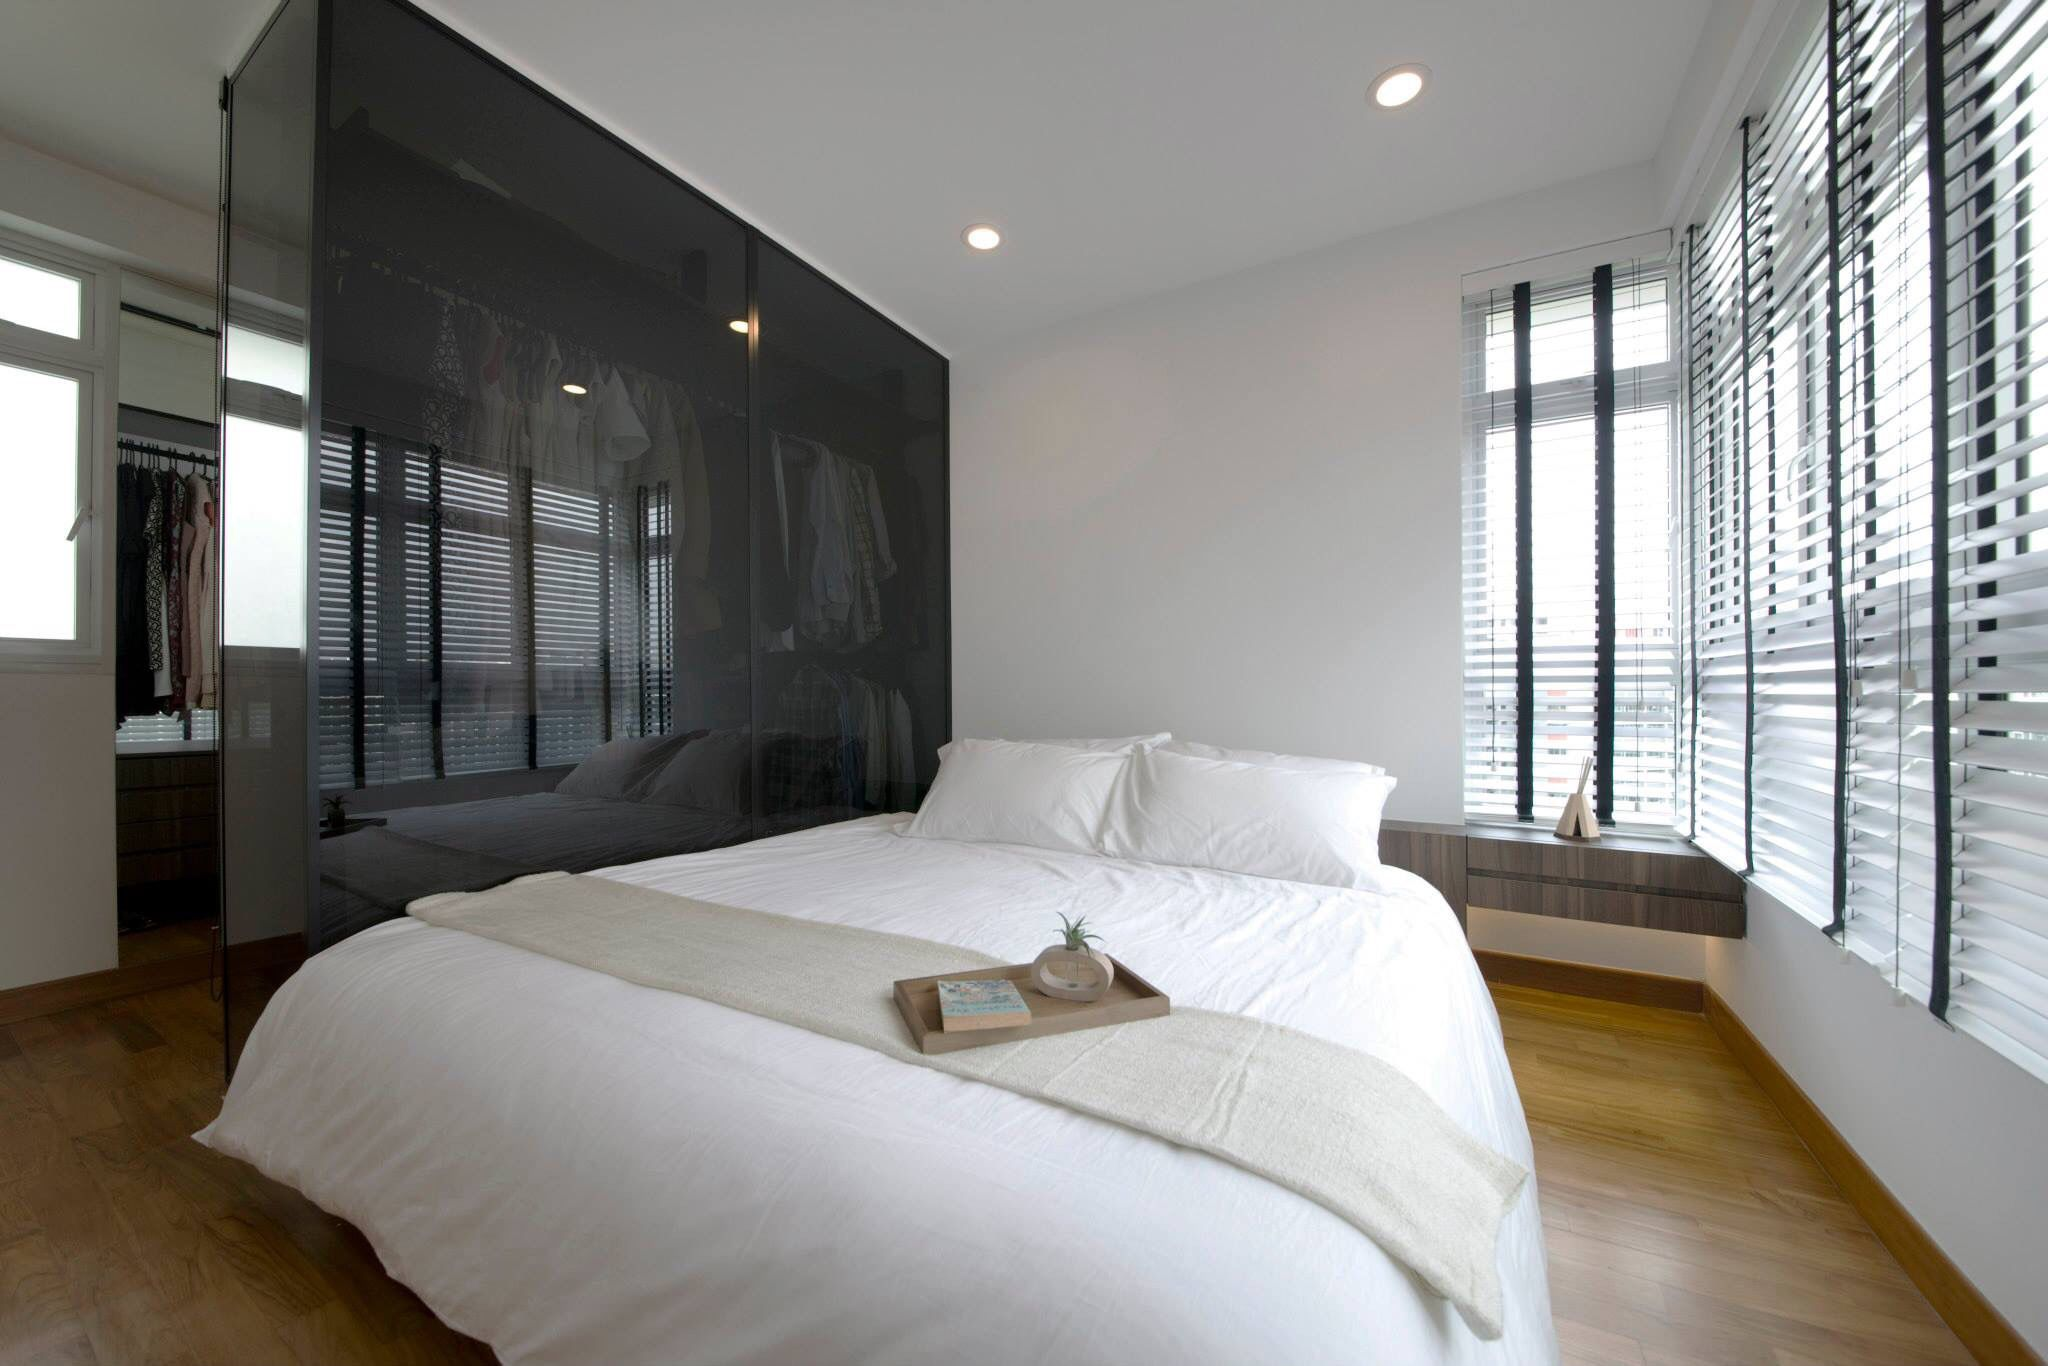 Master bedroom view with walk in wardrobe for the roof for Home decor 3 room flat